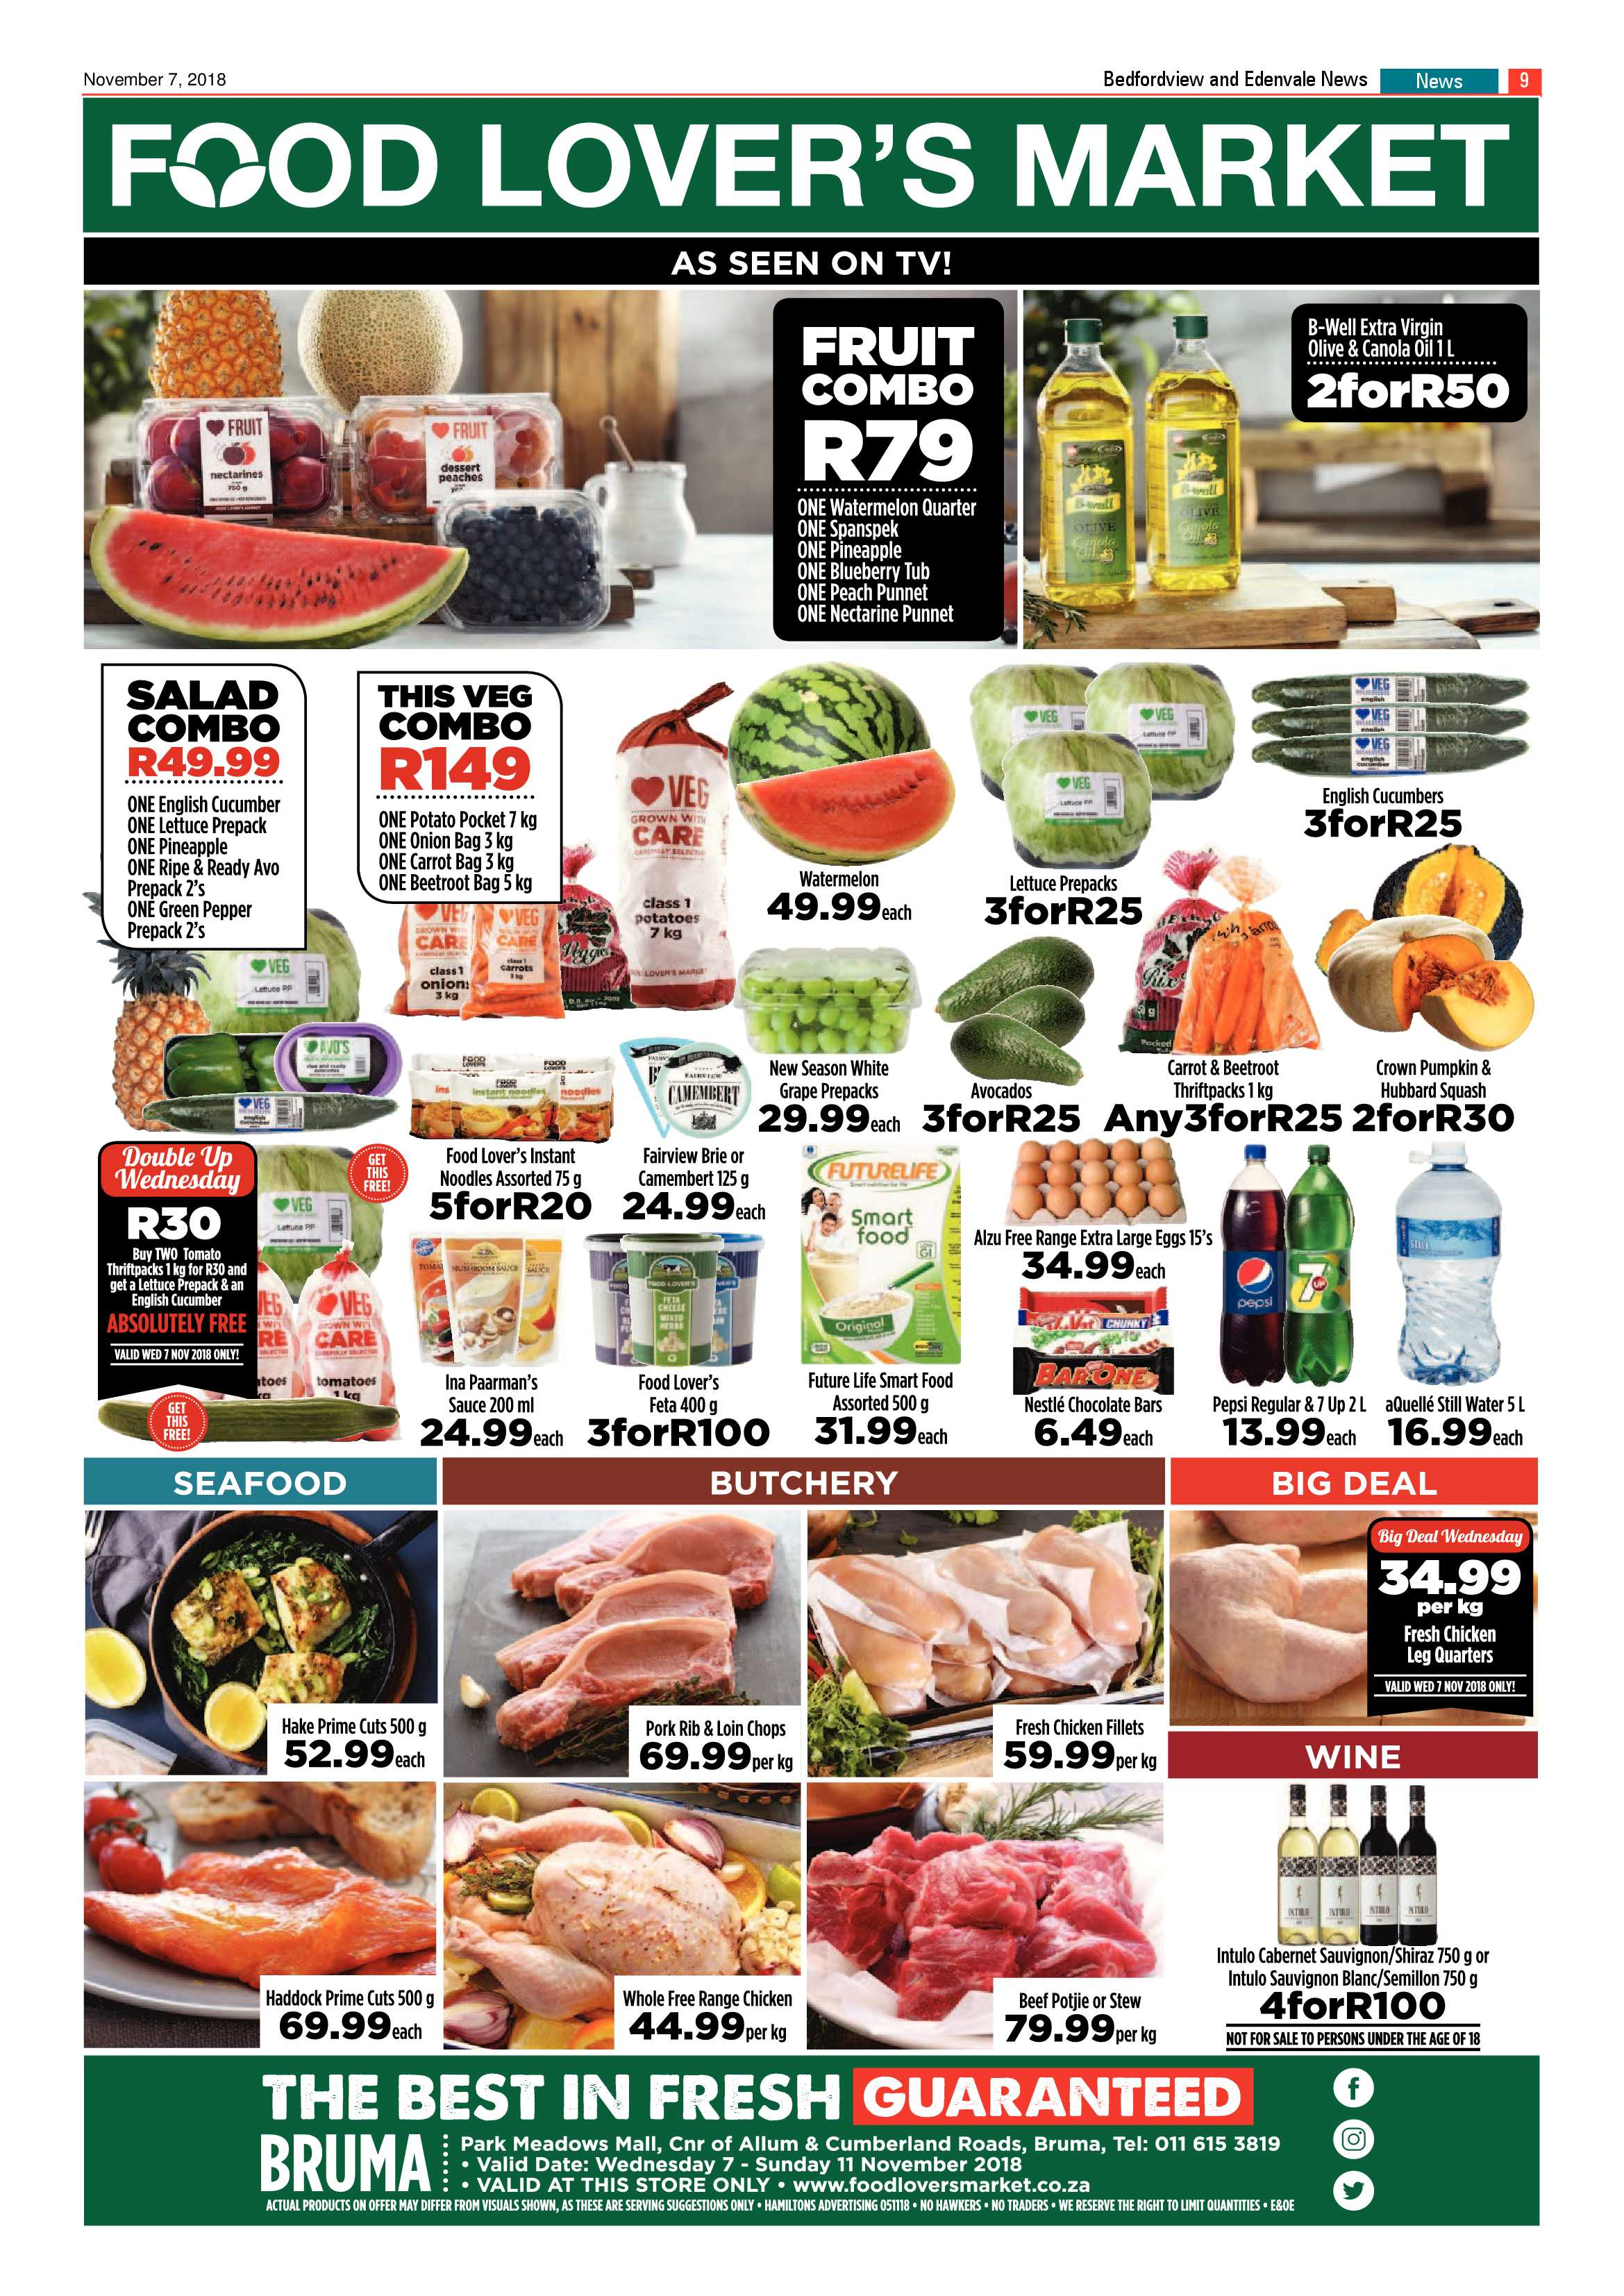 bedfordview-edenvale-news-07-november-2018-epapers-page-9